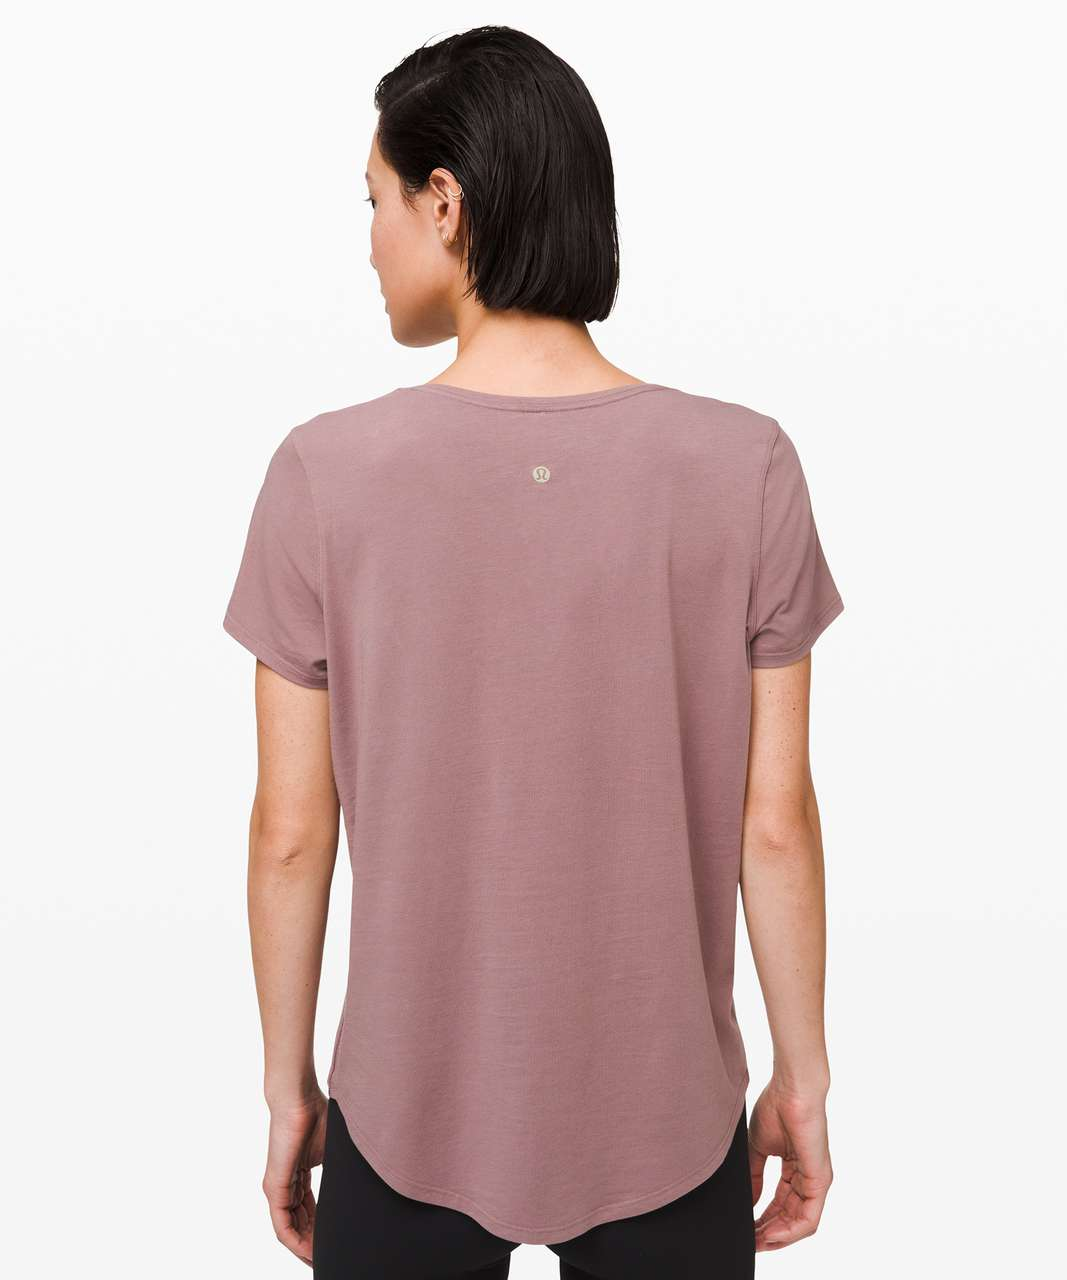 Lululemon Love Crew III *Lunar New Year - Misty Mocha